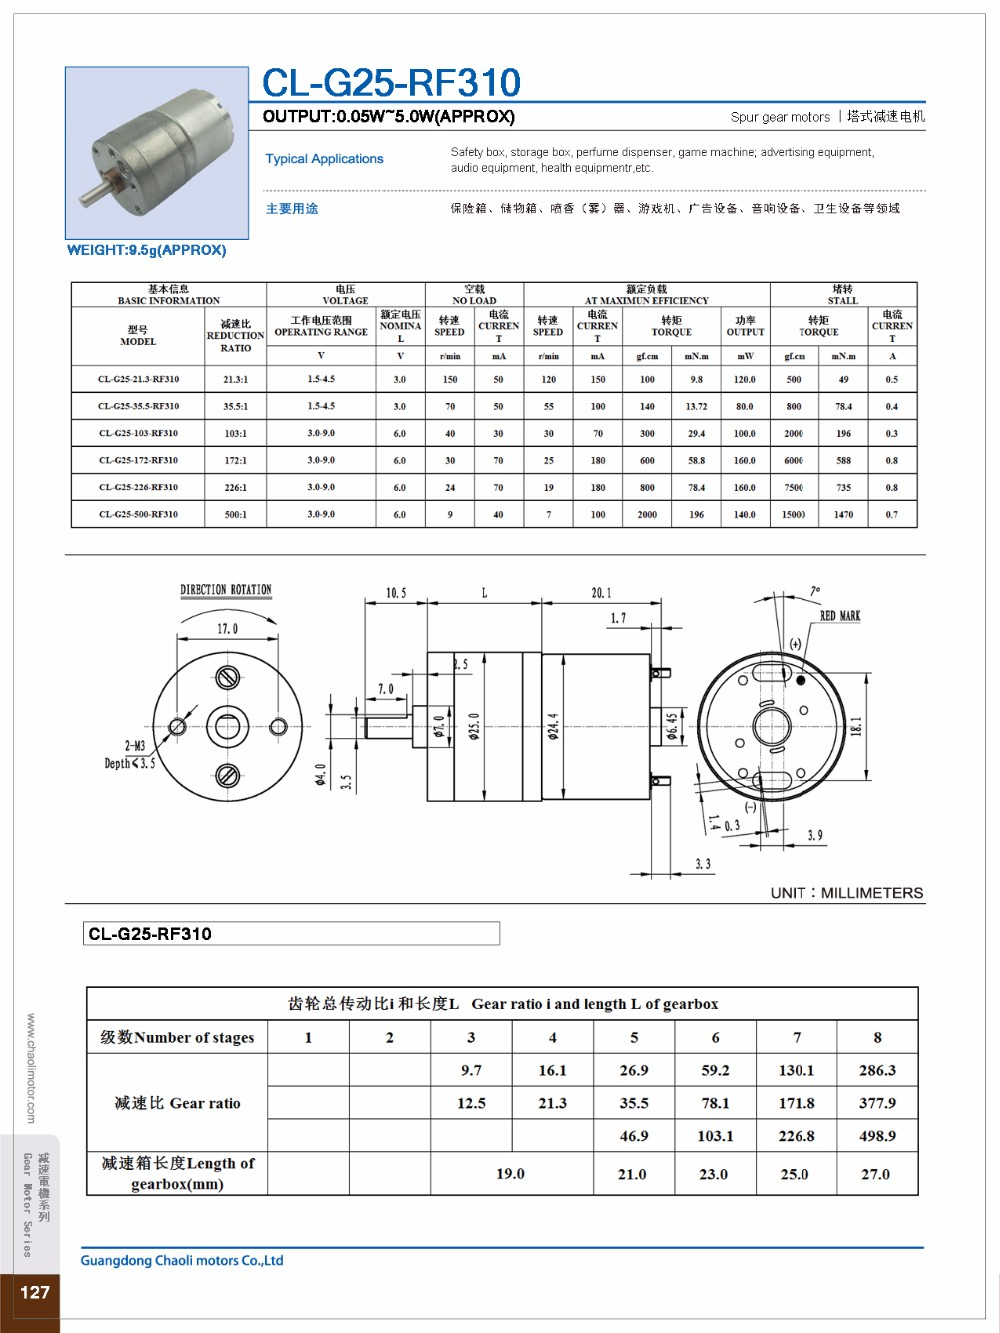 Low Noise Low Vibration Gear Reducer Motor CL-G25-RF310 For Perfume Dispenser And BBQ Grill